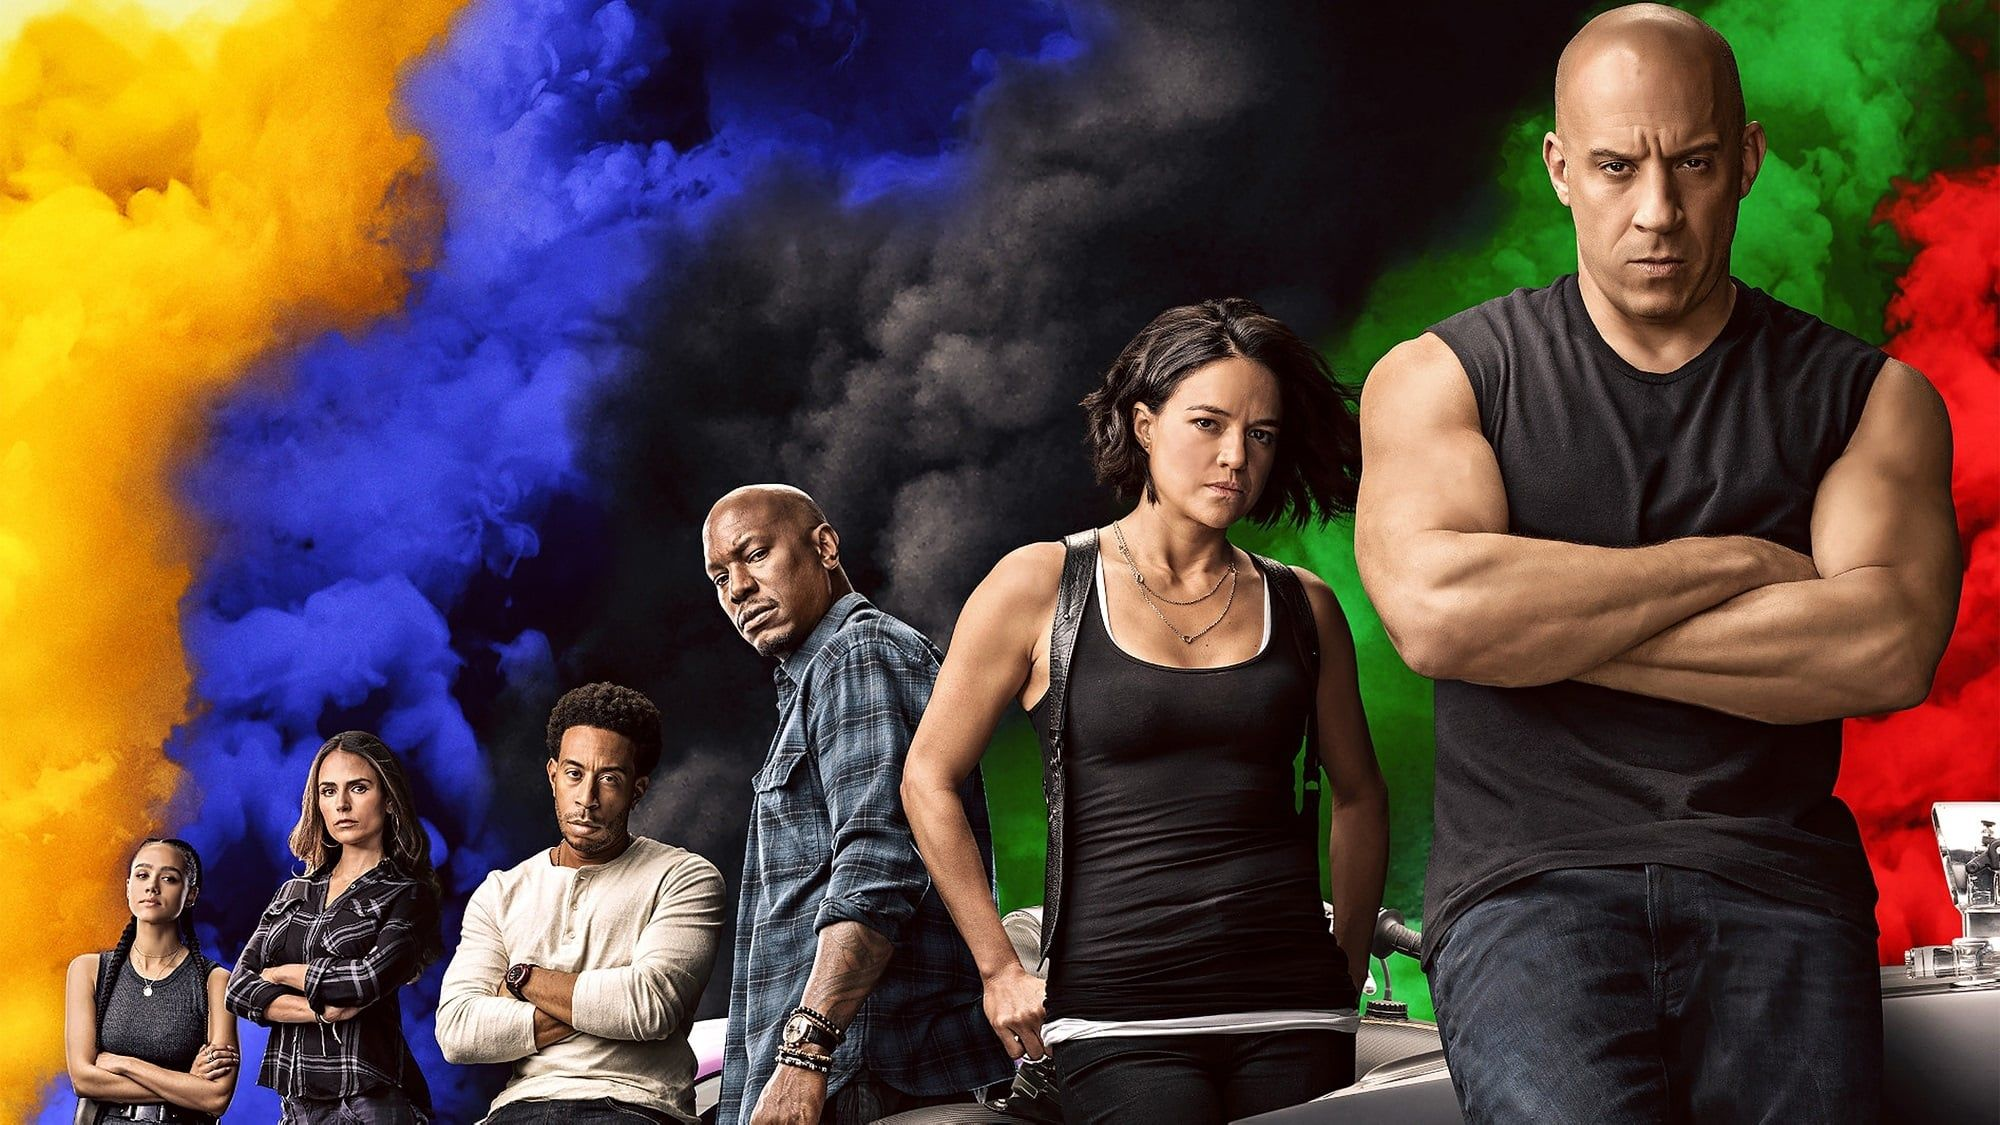 Watch F9 Full Movie Online Free Dominic Toretto Is Leading A Quiet Life Off The Grid With Letty And His Velozes E Furiosos Filmes On Line Velocidade Furiosa